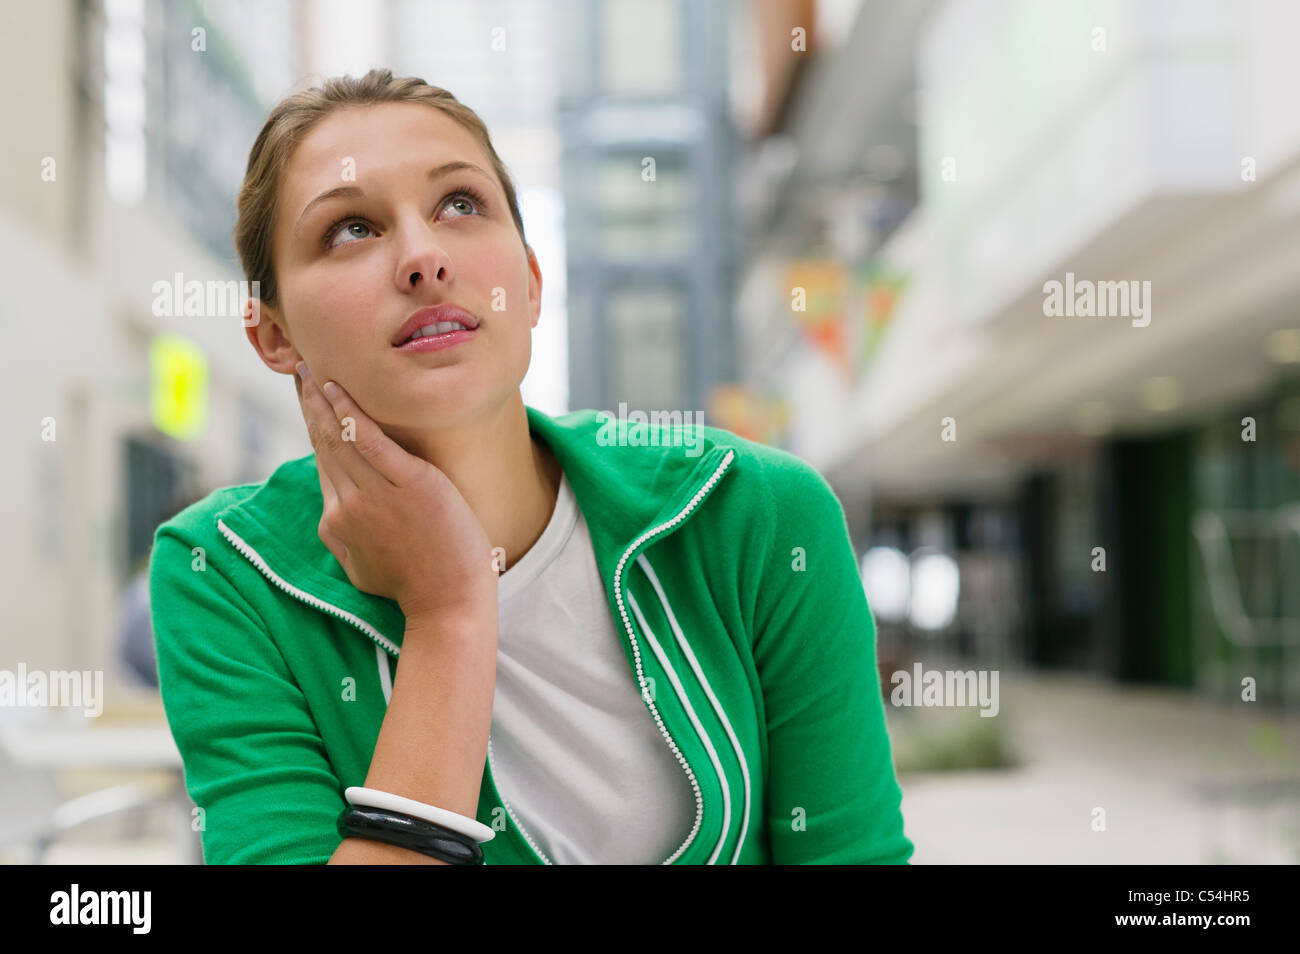 Contemplative woman looking up in a university lobby - Stock Image